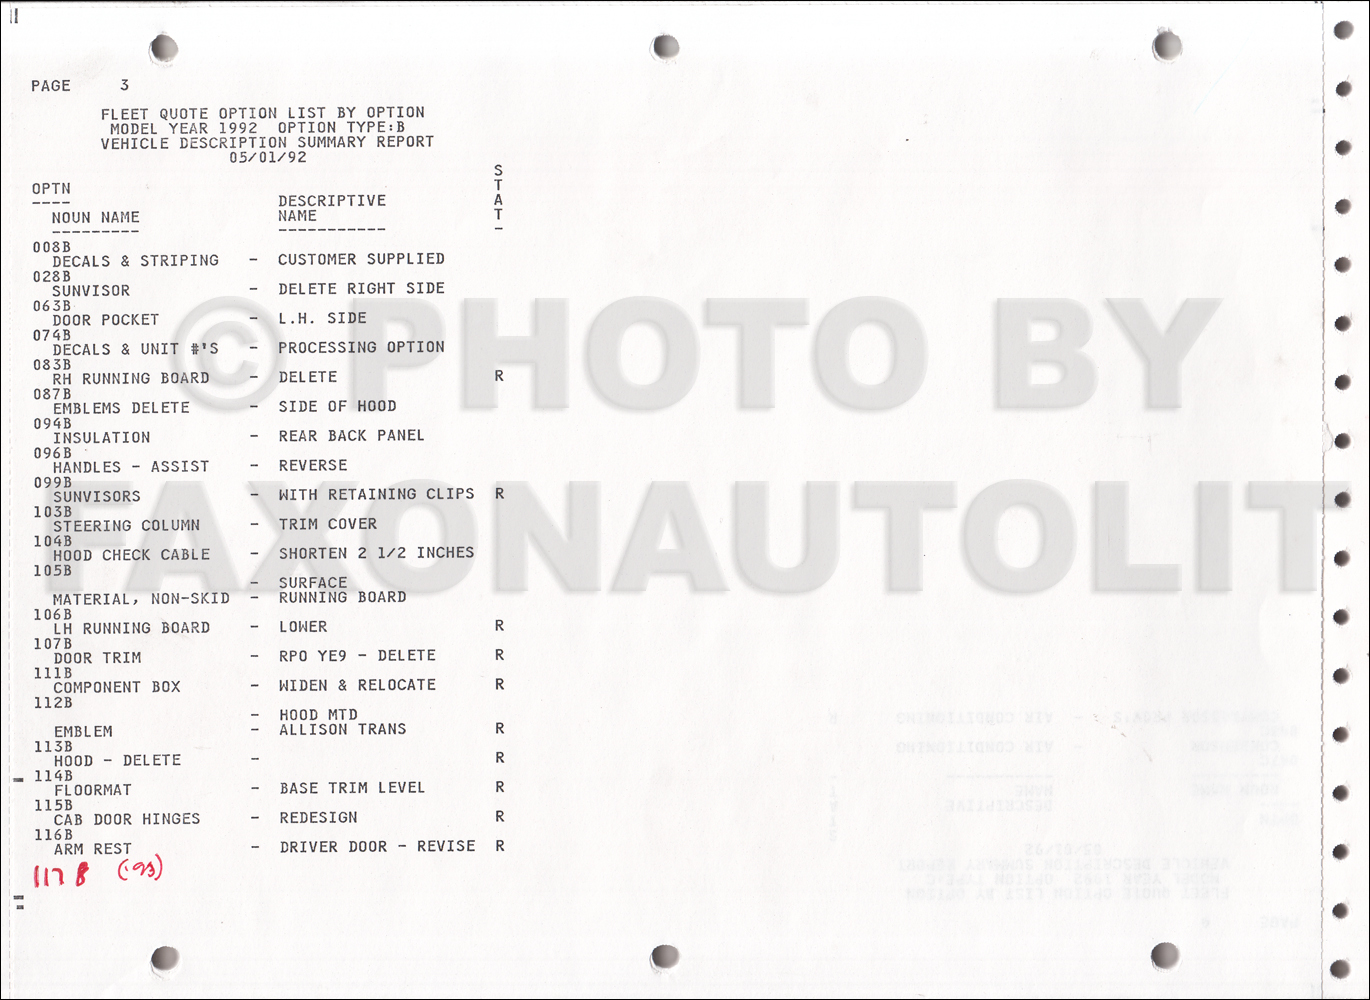 1992 GMC Fleet Option Code List Original